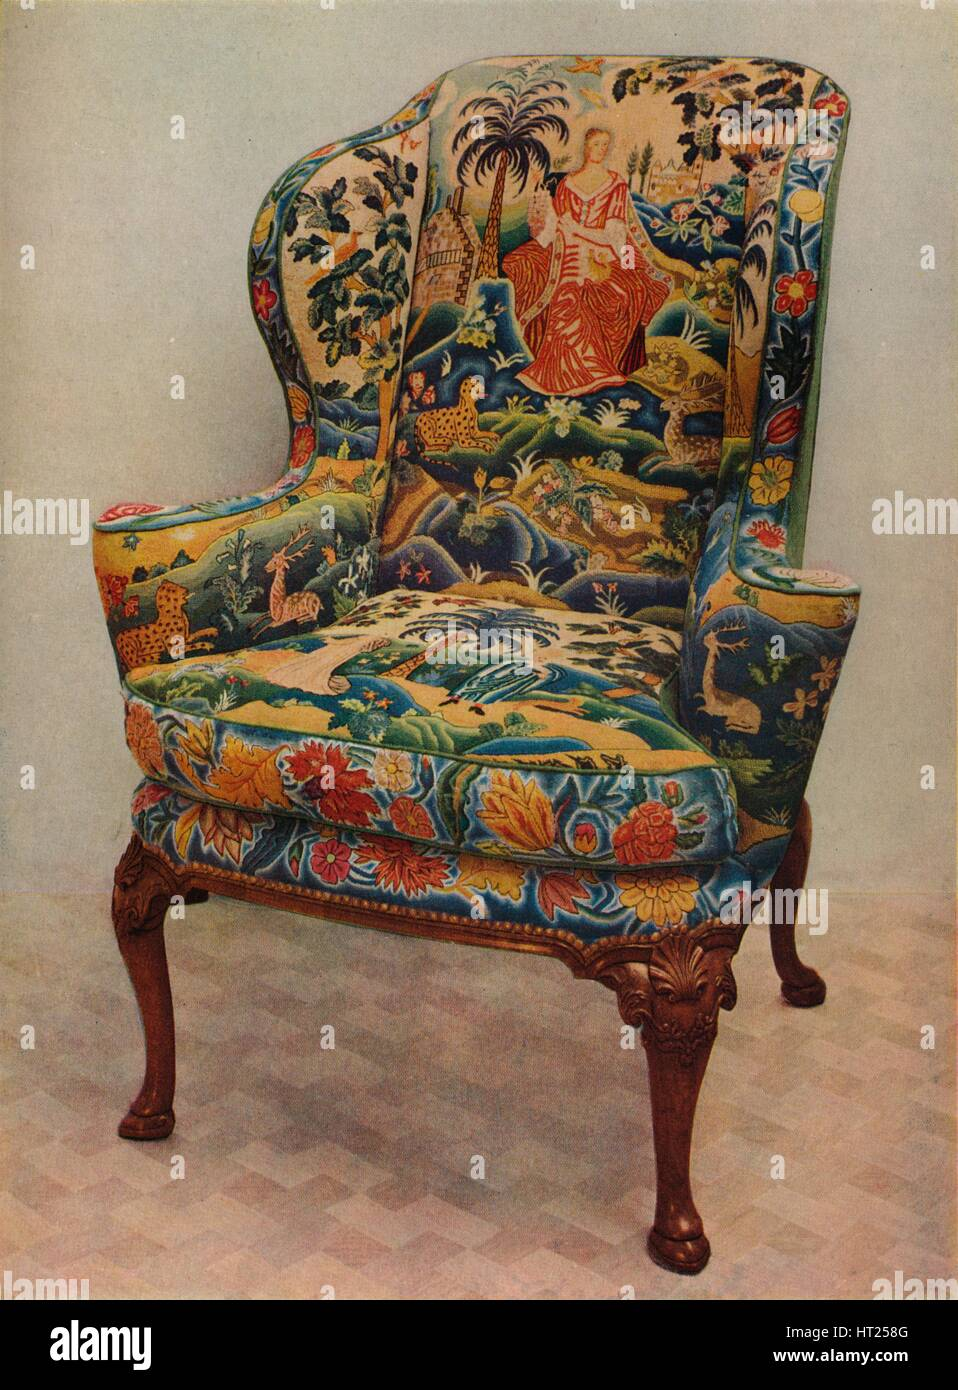 'An upholstered armchair with wings, carved walnut frame and original silk needlework covering', c17 Artist: - Stock Image